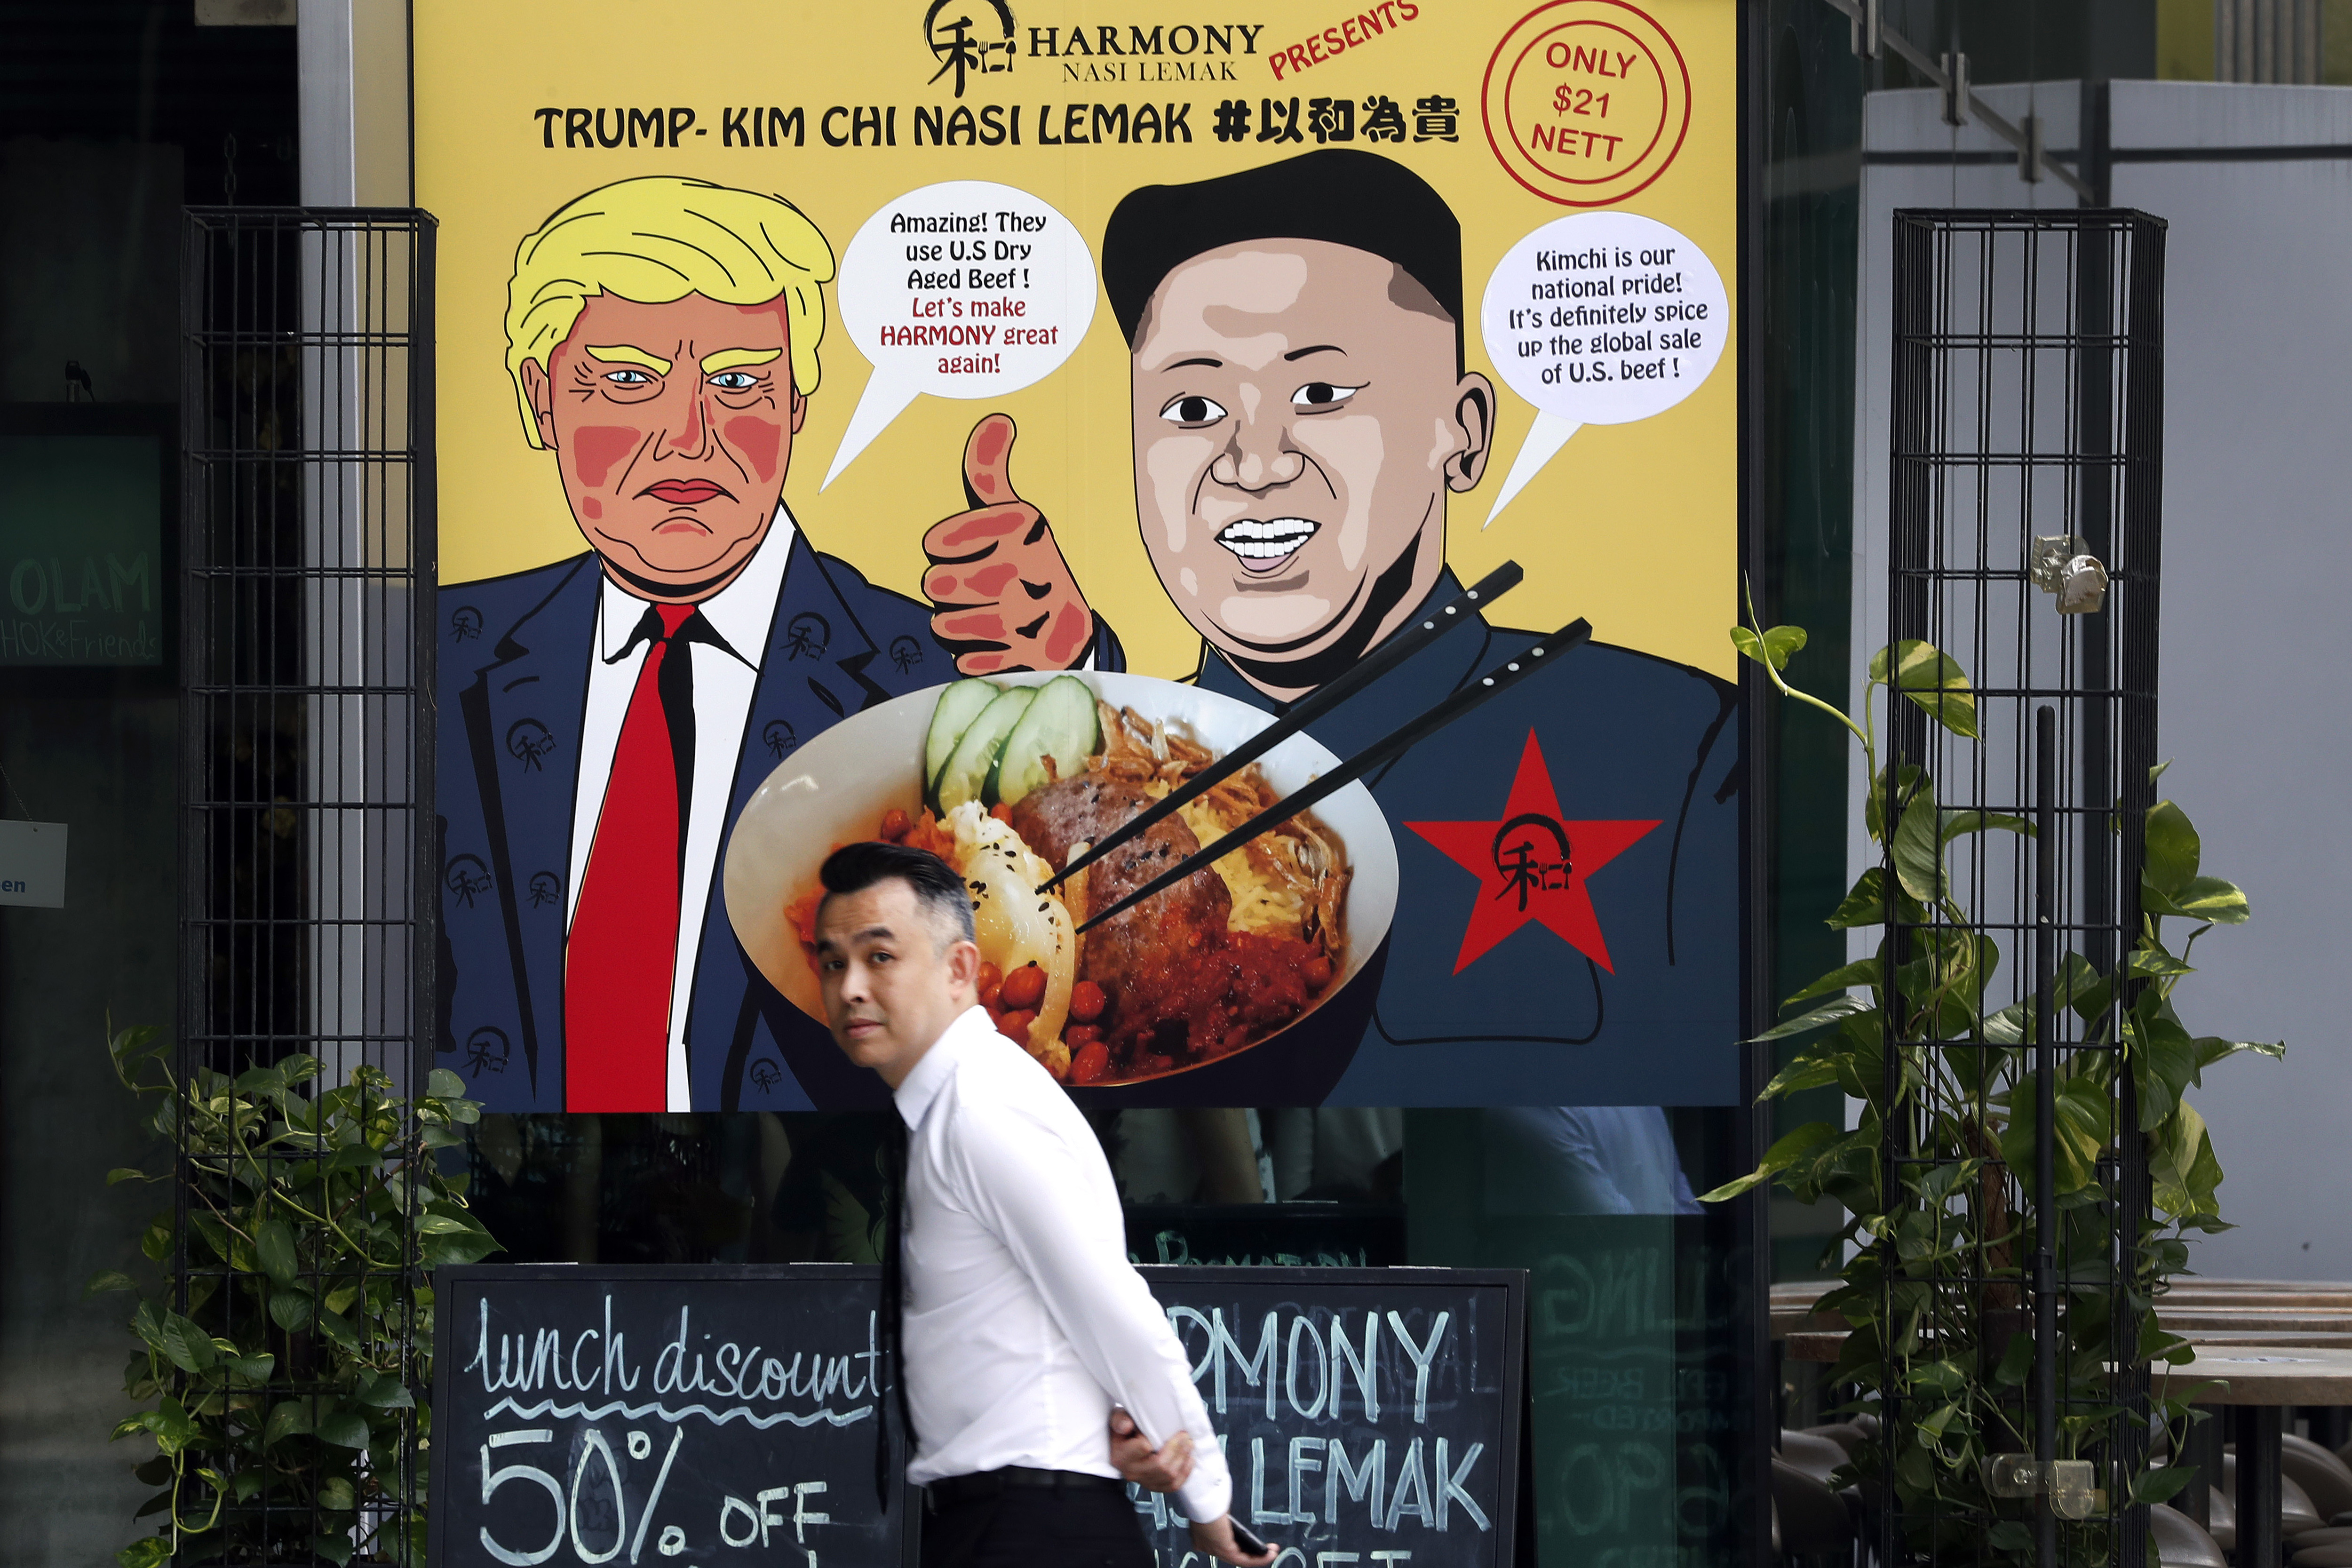 """A man walks past an advertisement board of cartoon caricatures of U.S. President Donald Trump and North Korean leader Kim Jong Un which are supposed to be the inspiration behind a local dish, the """"Trump-Kim Chi Nasi Lemak"""" at a mall on Thursday, June 7, 2018, in Singapore. Trump and Kim will meet at a luxury resort in Singapore next week for nuclear talks, the White House said Tuesday. (AP Photo/Wong Maye-E)"""